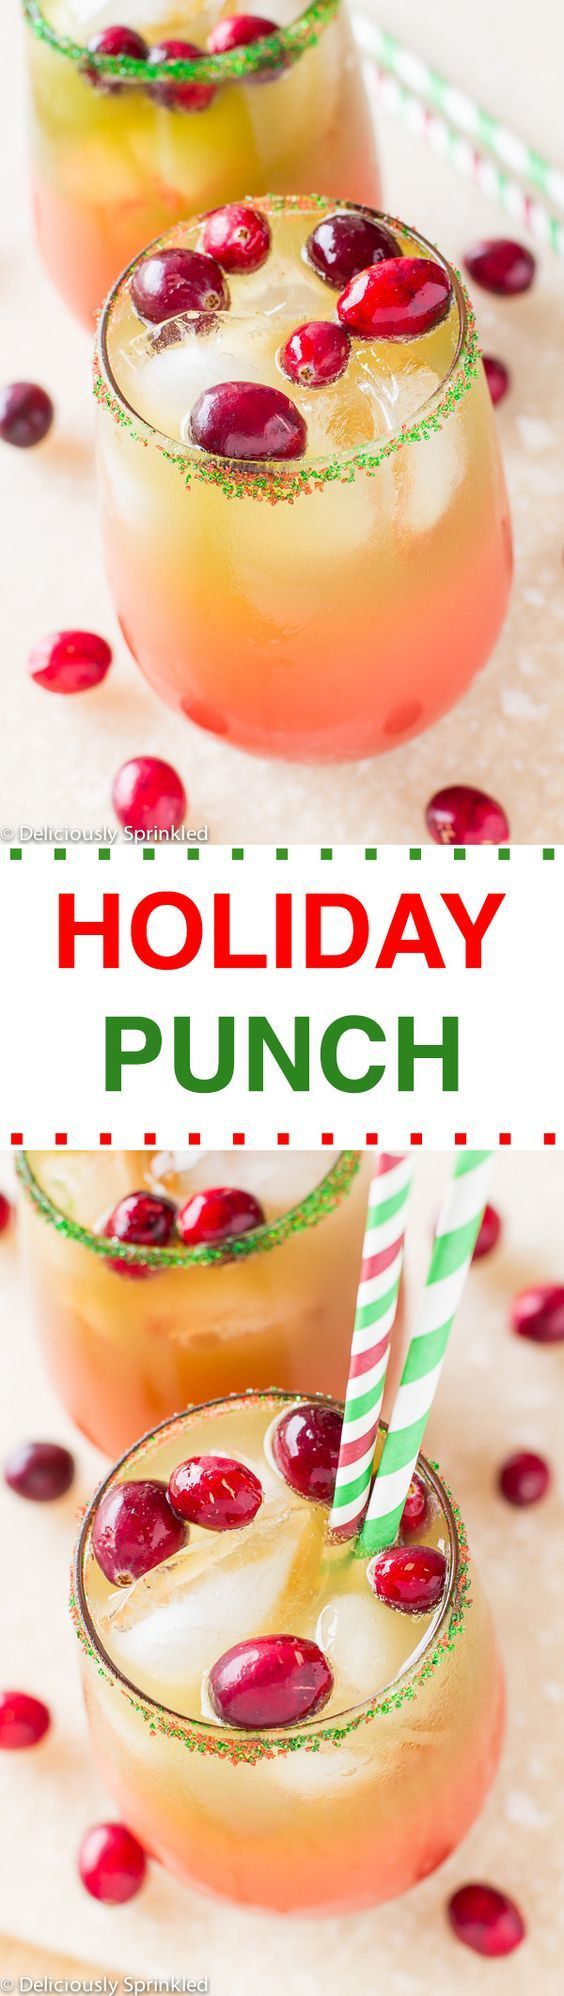 A delicious and easy to make Holiday Punch Recipe! It was a HUGE HIT at our Christmas party, everyone loved it!